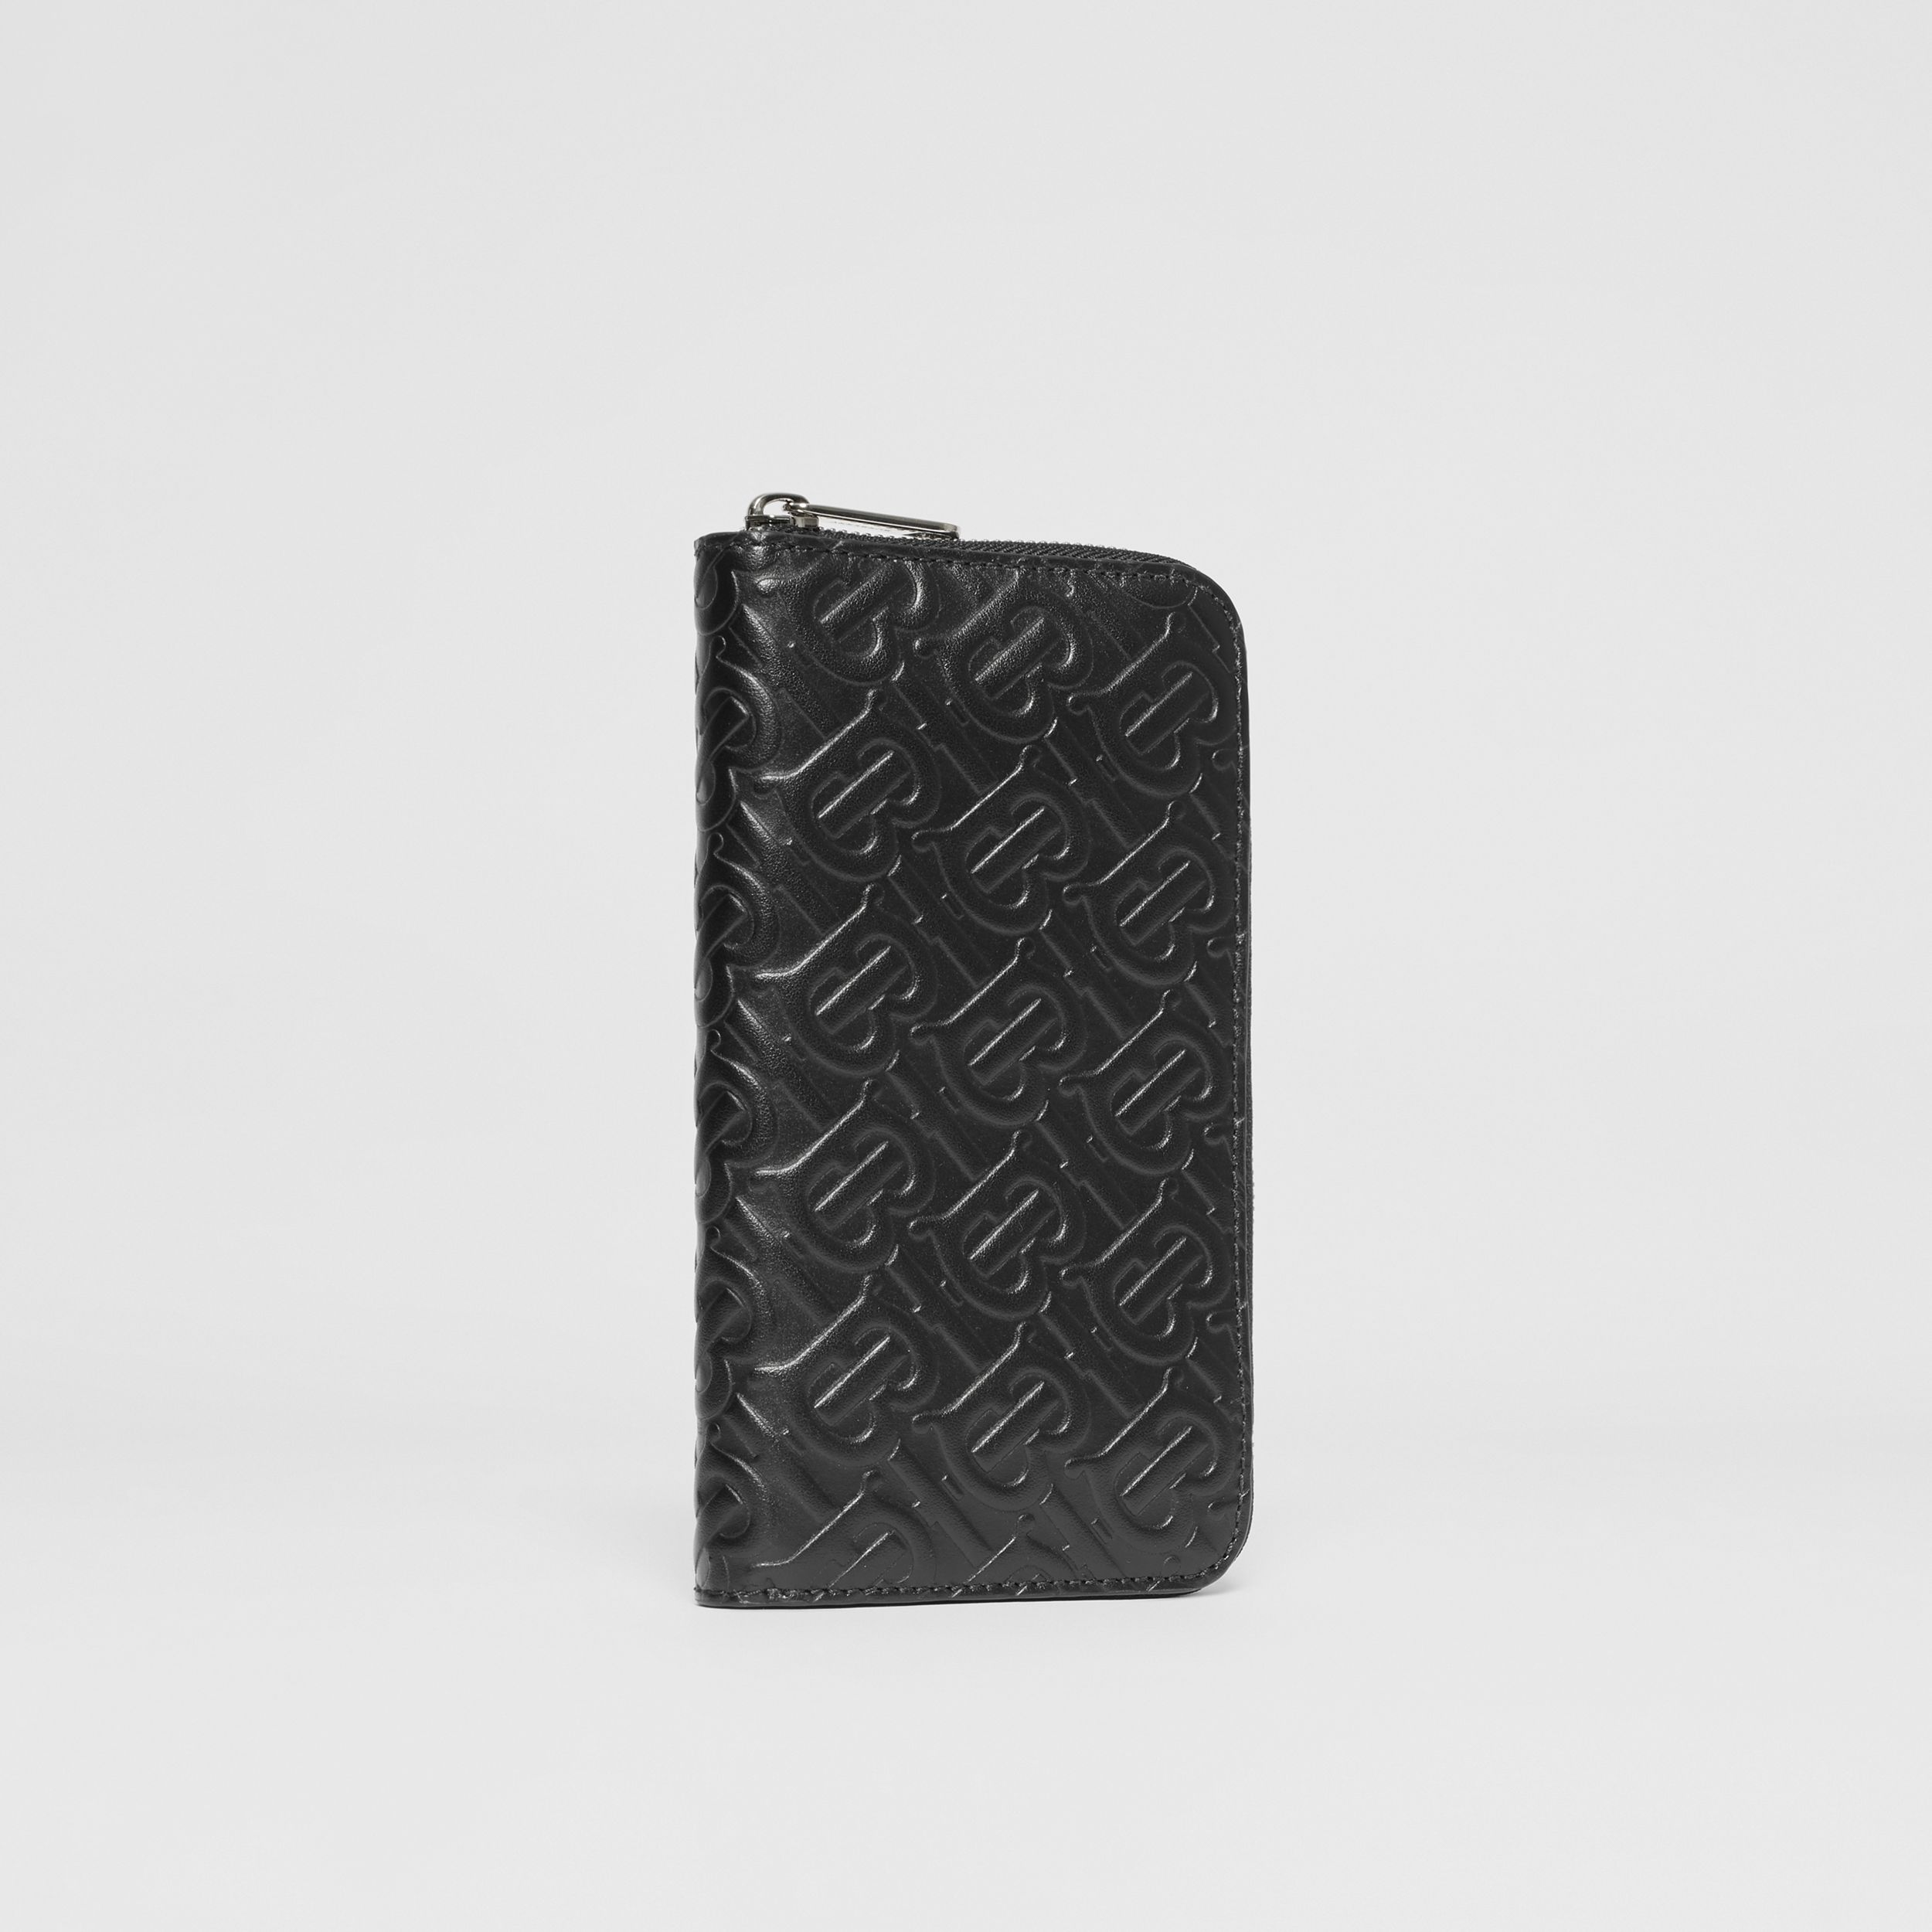 Monogram Leather Ziparound Wallet in Black - Men | Burberry - 4